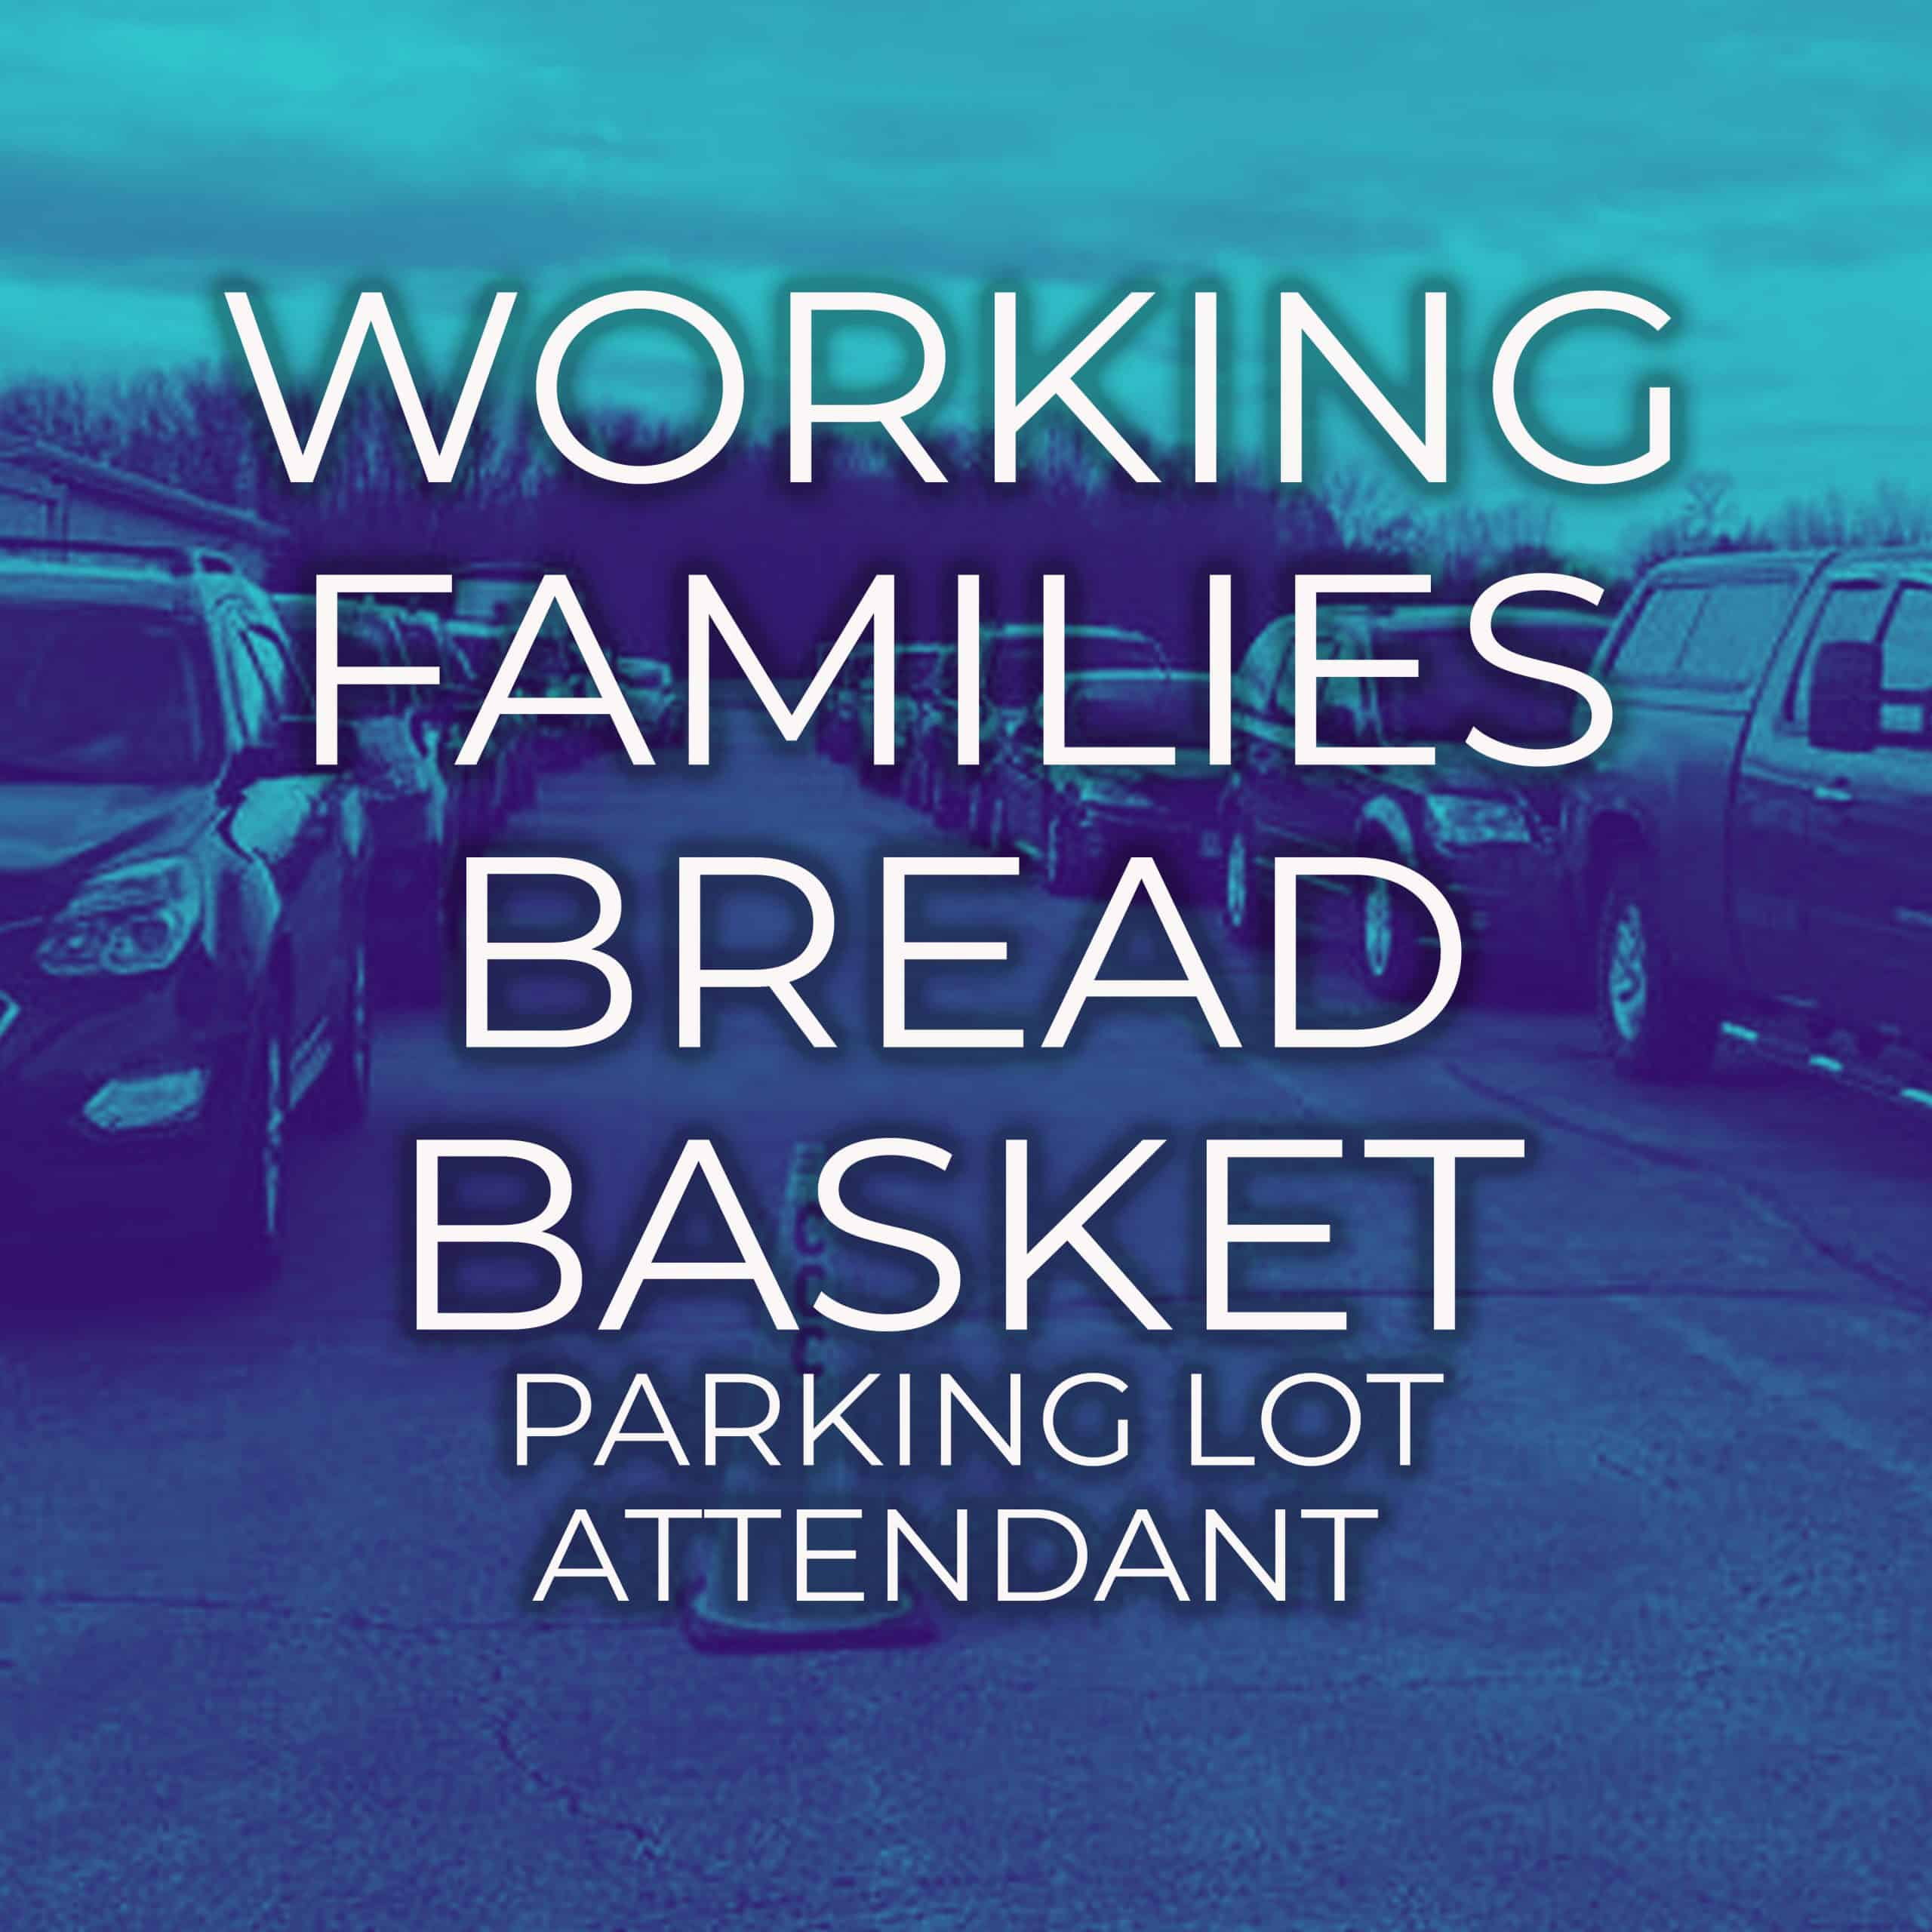 5e84f7eca6202f4aa973c888_Working Families Bread Basket